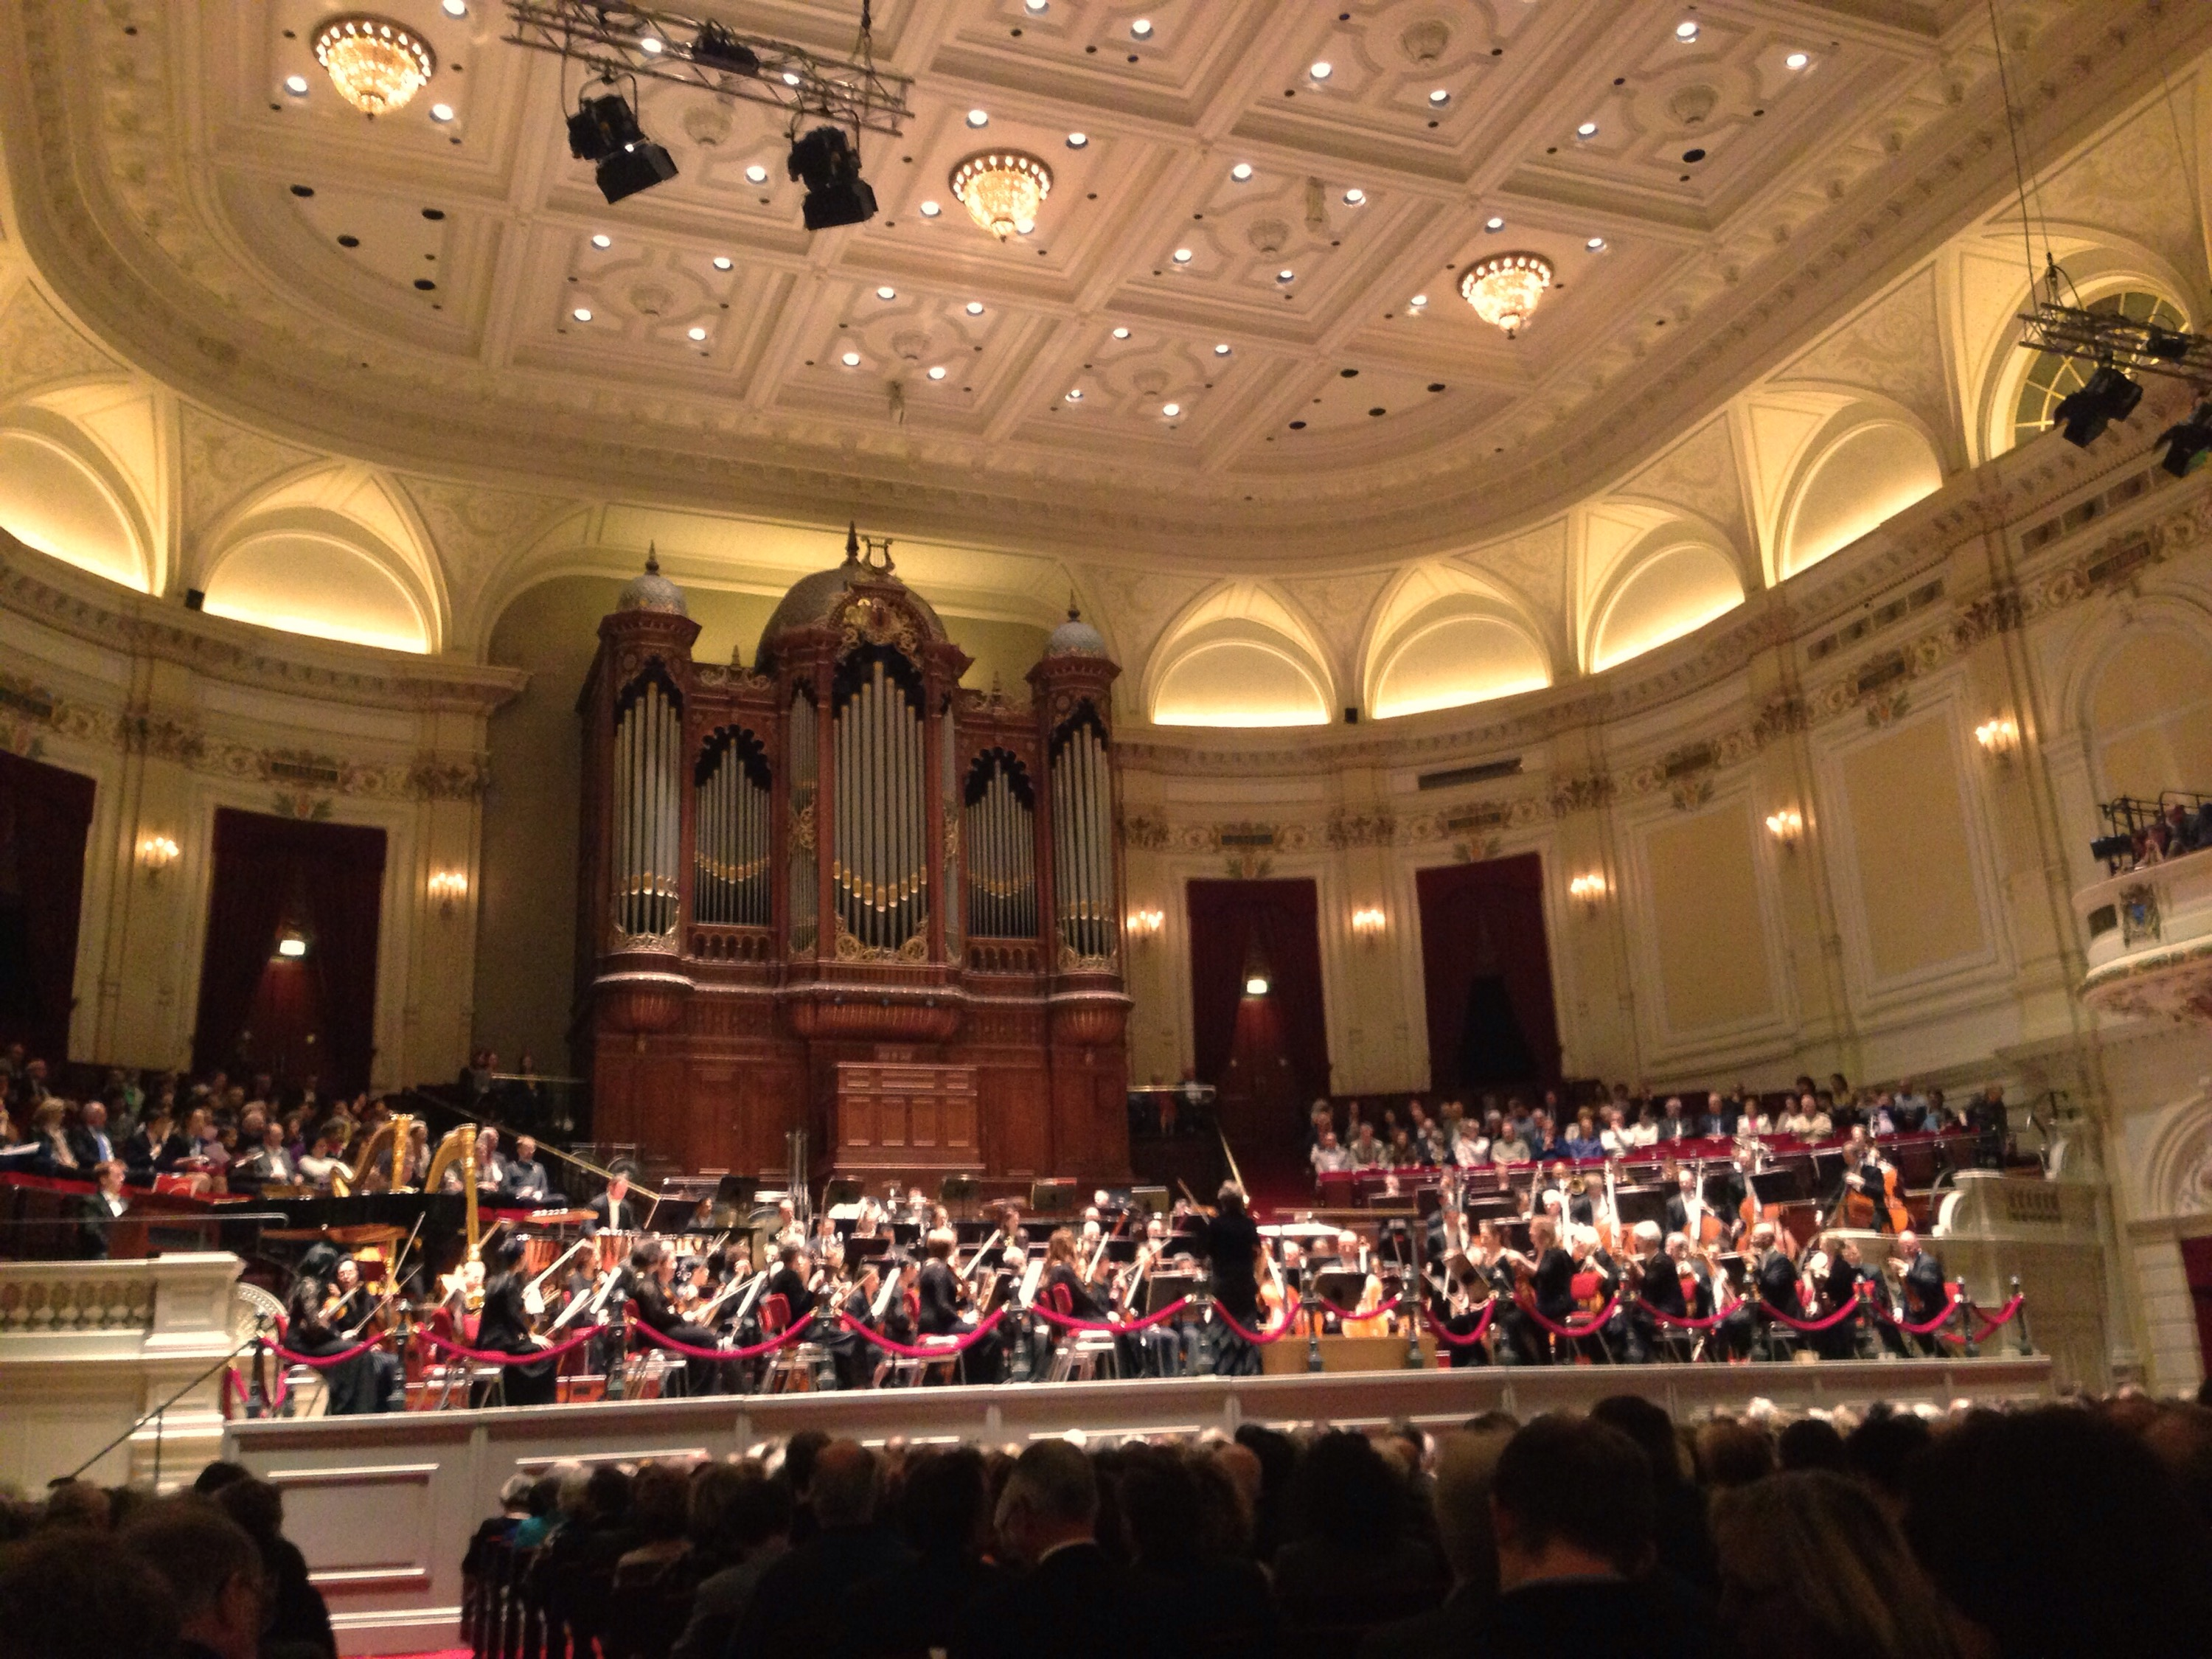 Joyce Didonato and the New York Philharmonic at the Concertgebouw (4.25/5) and dinner at MOMO